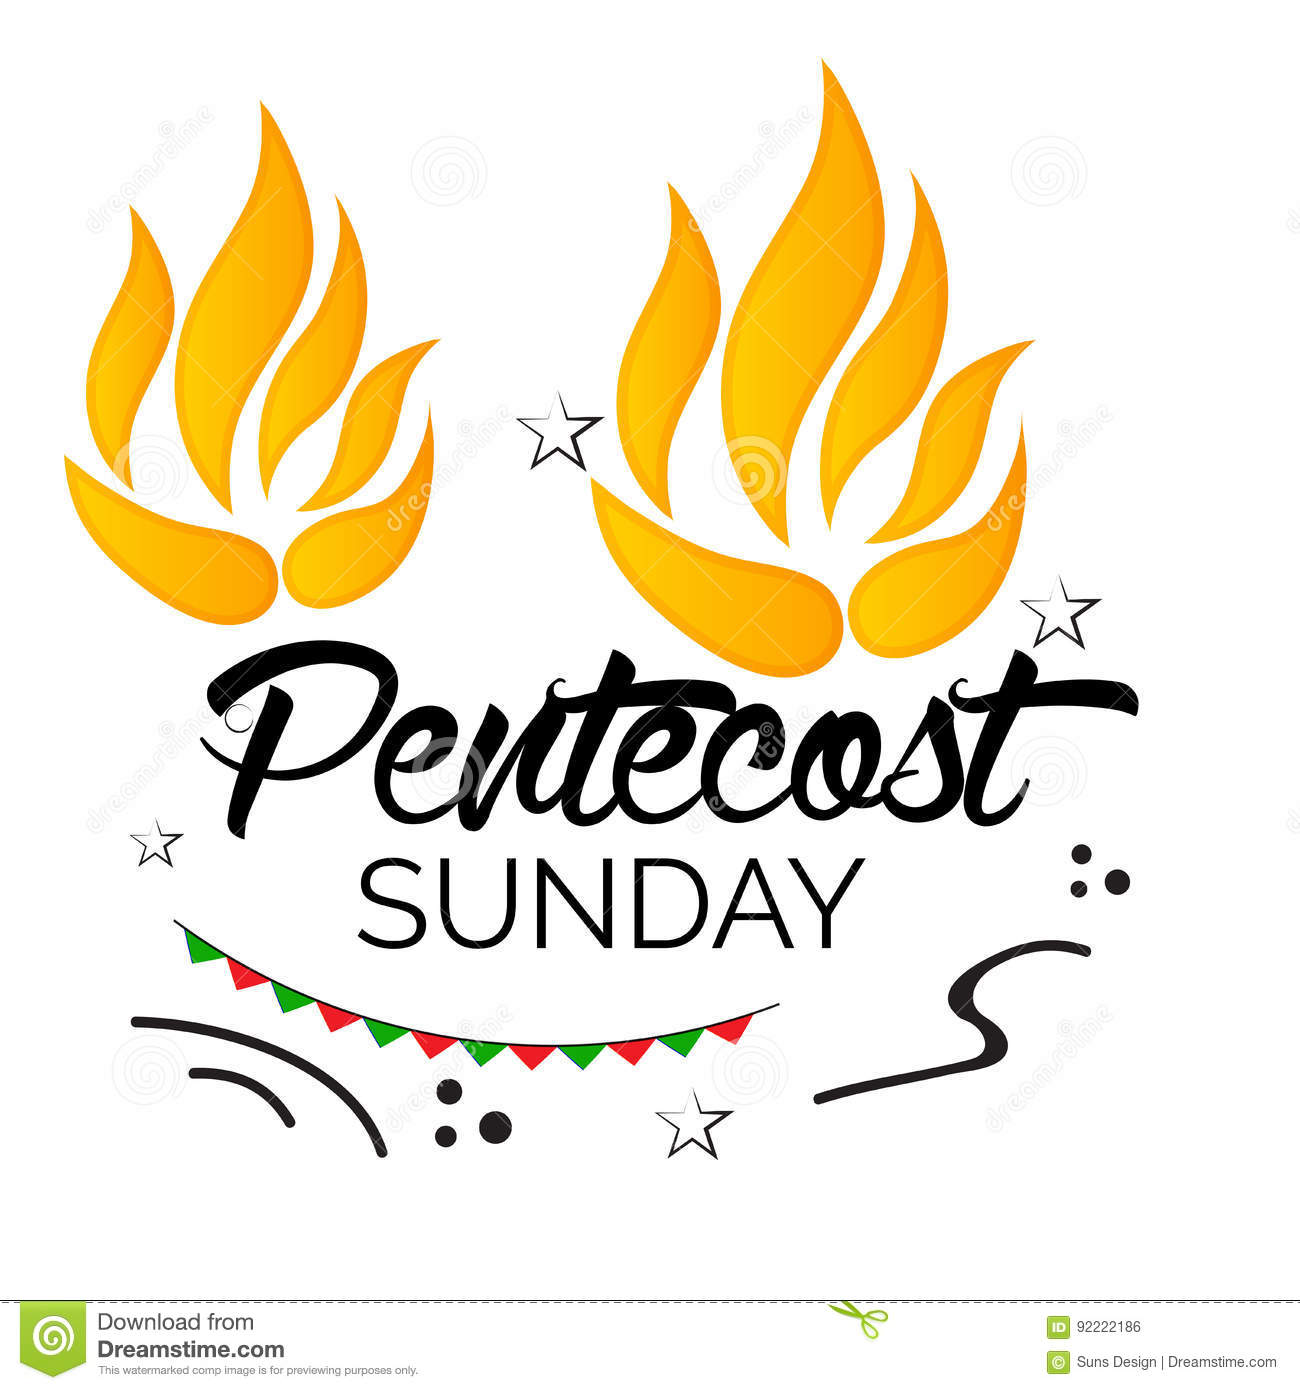 Station . Free clipart for pentecost sunday